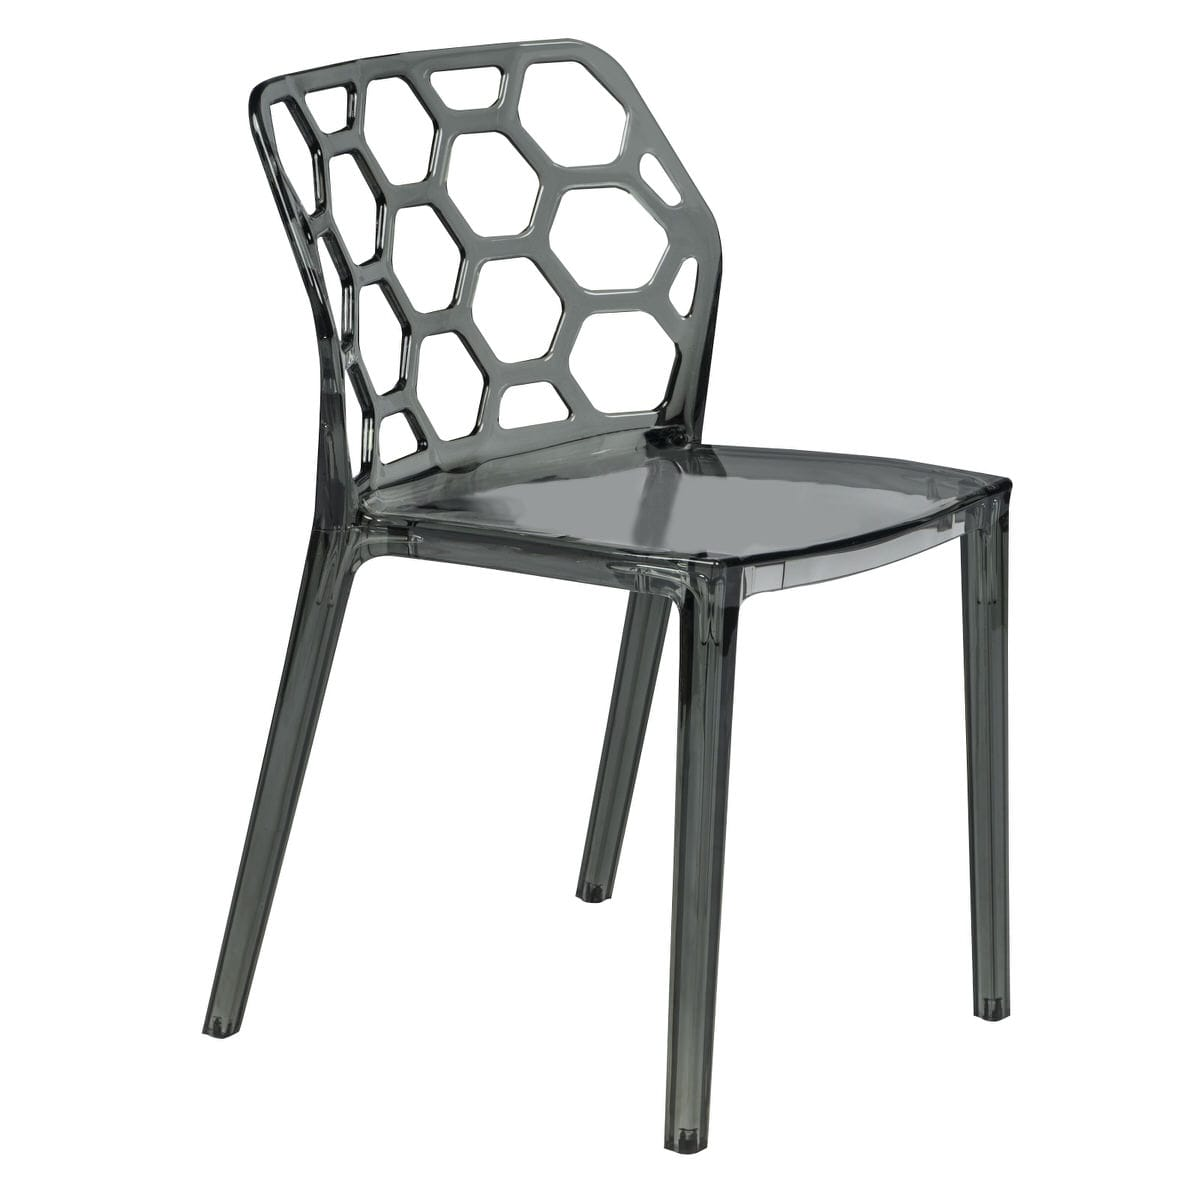 Stupendous Dynamic Modern Transparent Black Dining Chair By Leisuremod Pabps2019 Chair Design Images Pabps2019Com